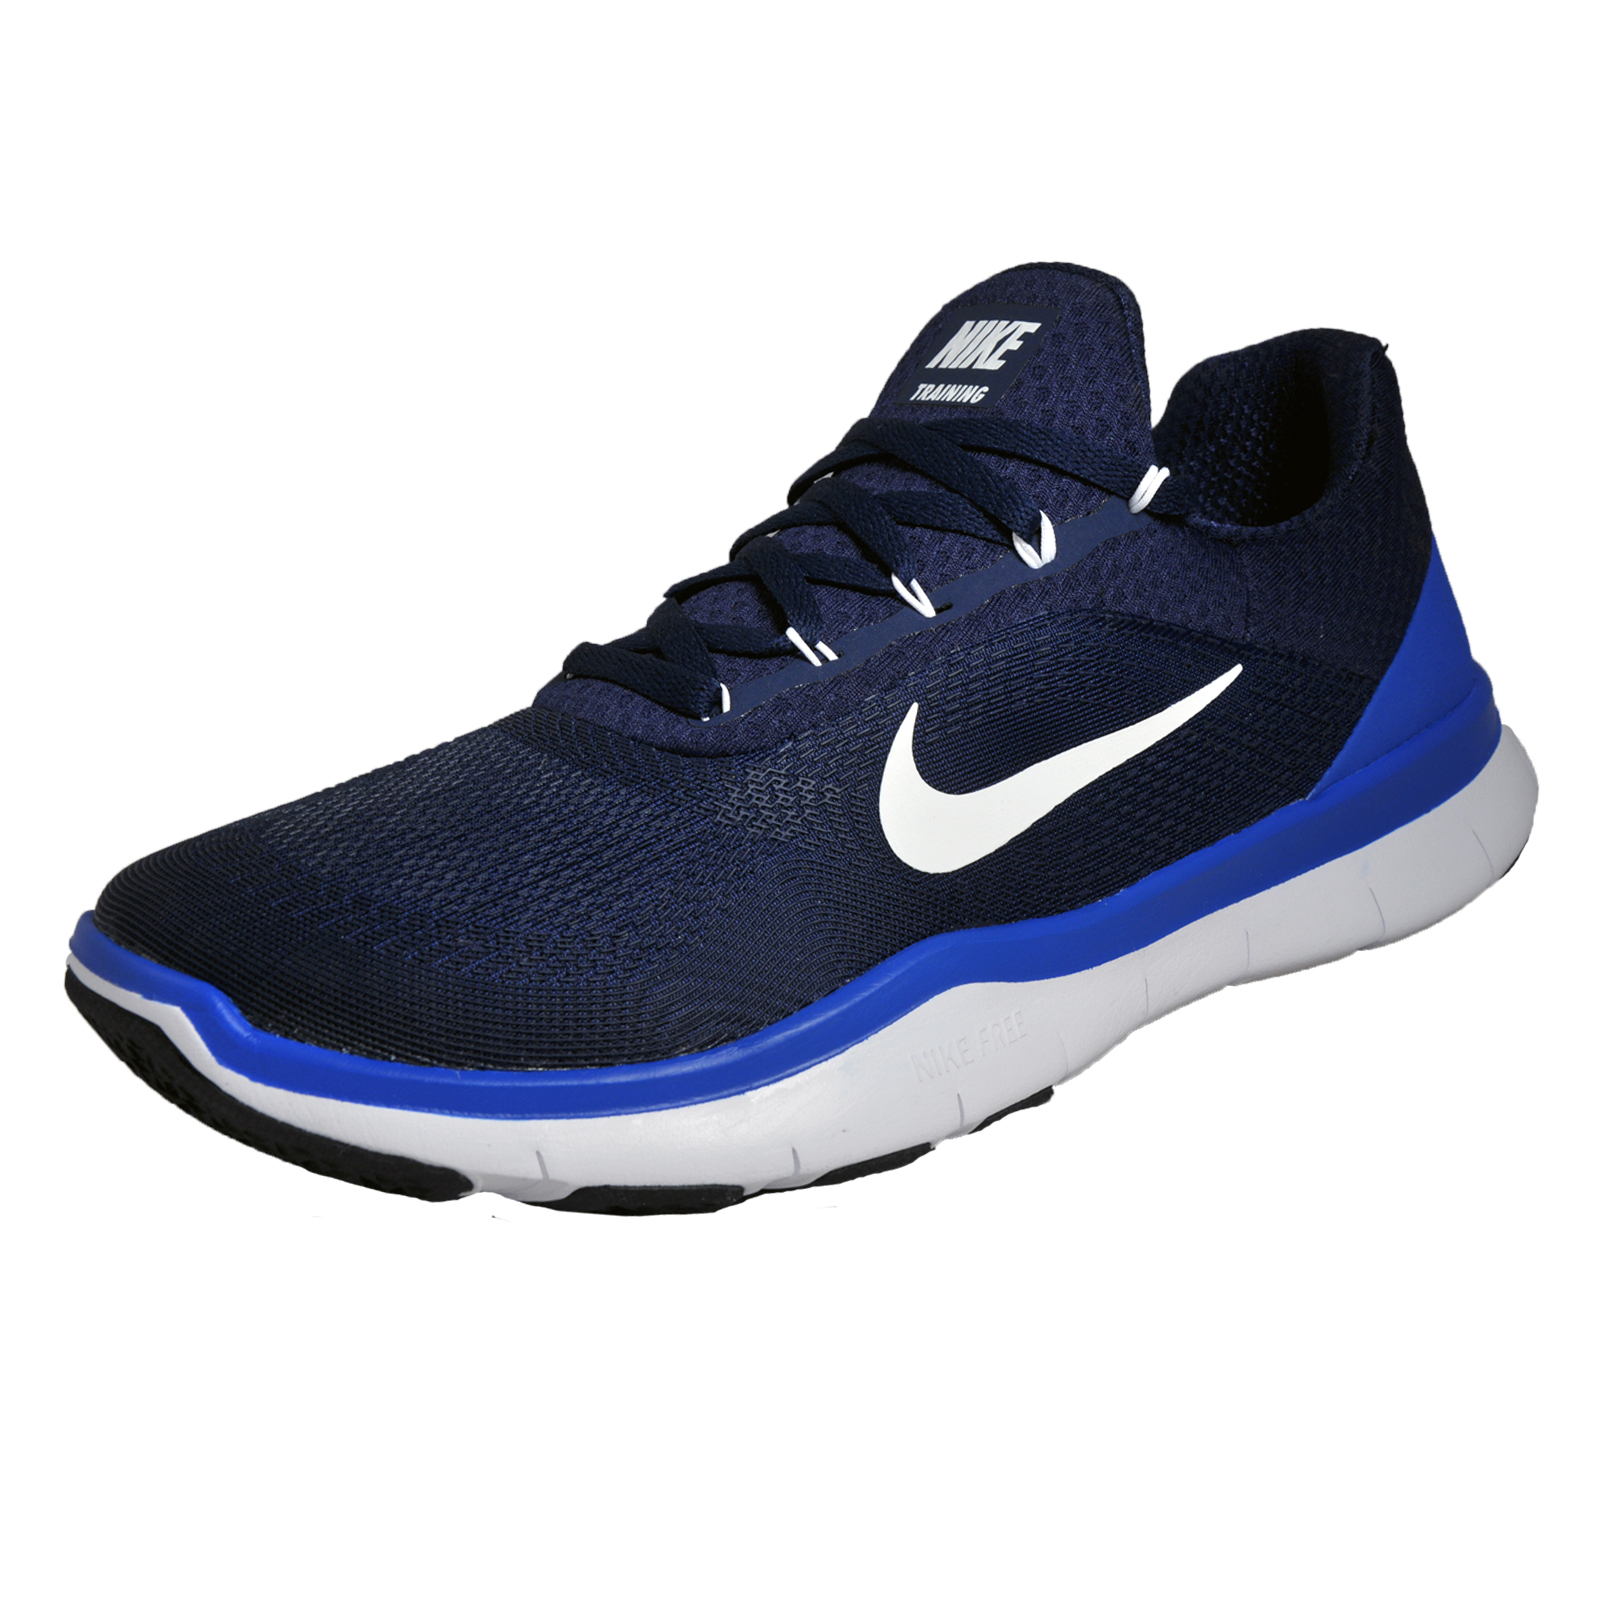 Nike Free Trainer V7 Mens Running Shoes Fitness Gym Trainers Navy